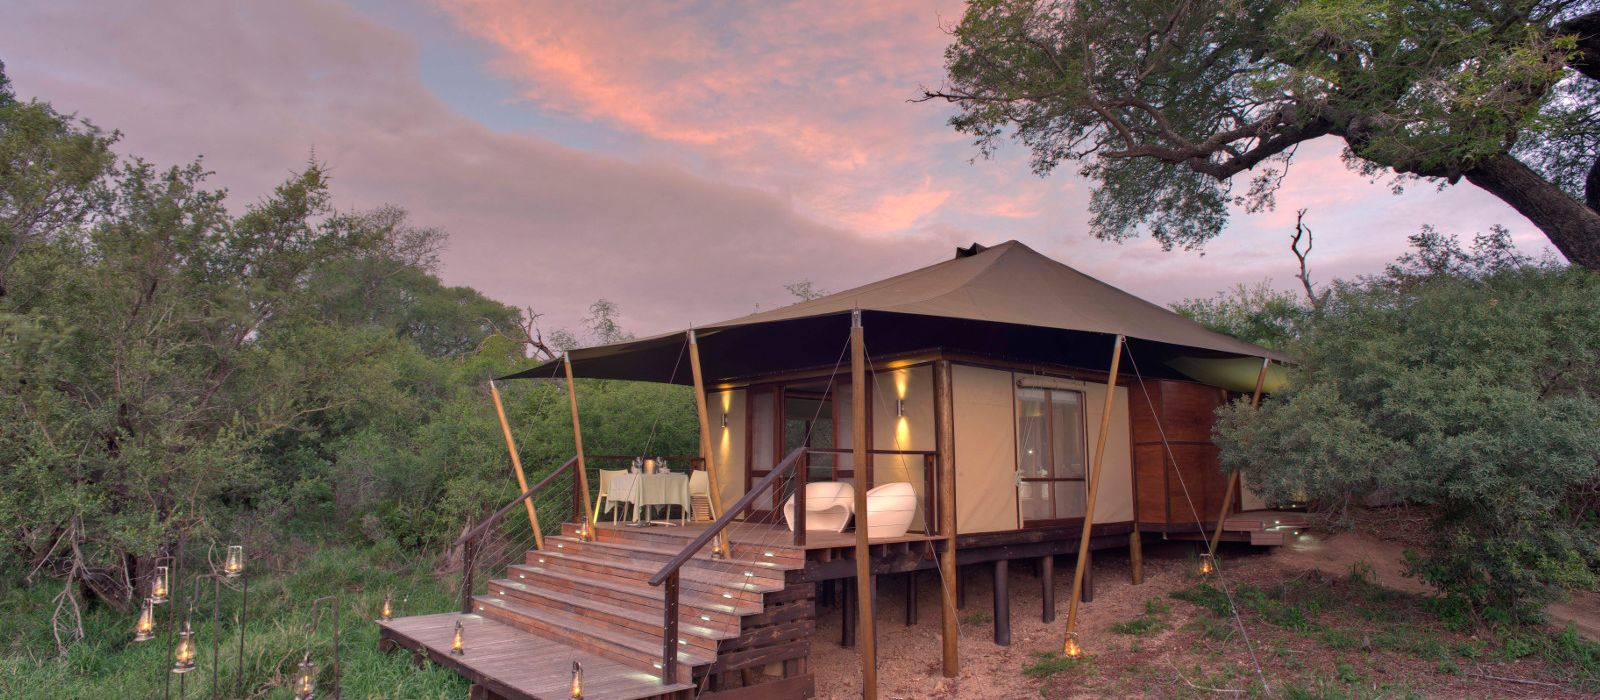 Hotel Ngala Tented Camp South Africa